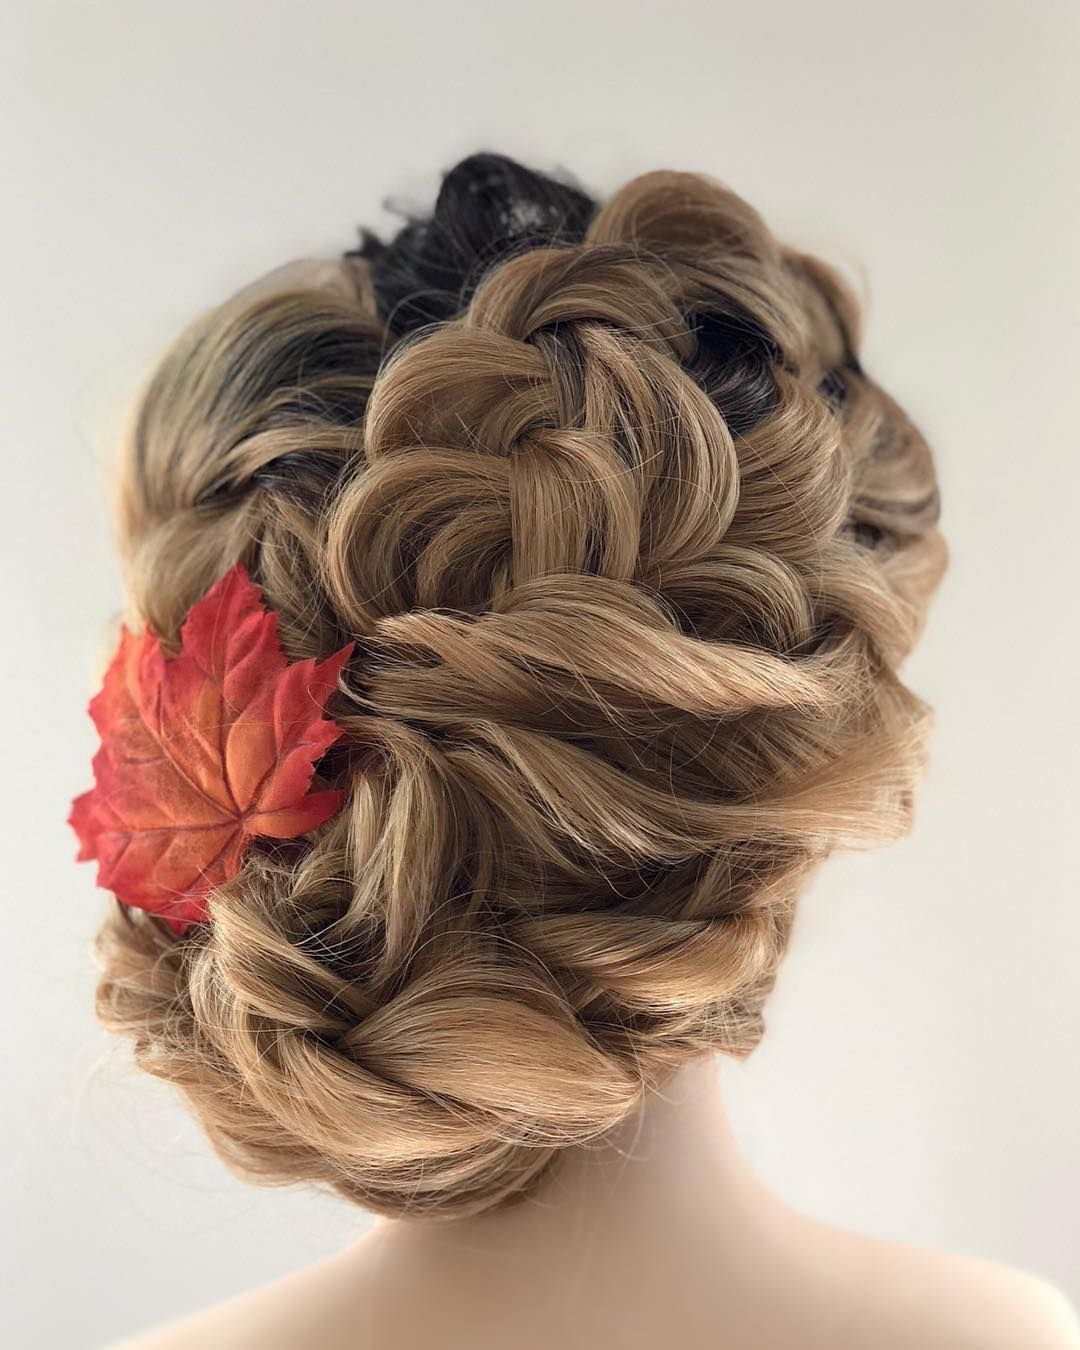 Wedding Hairstyle Nashville: Fall-spiration 🍁 #AutumnDreams #PivotPoint #LearnForward